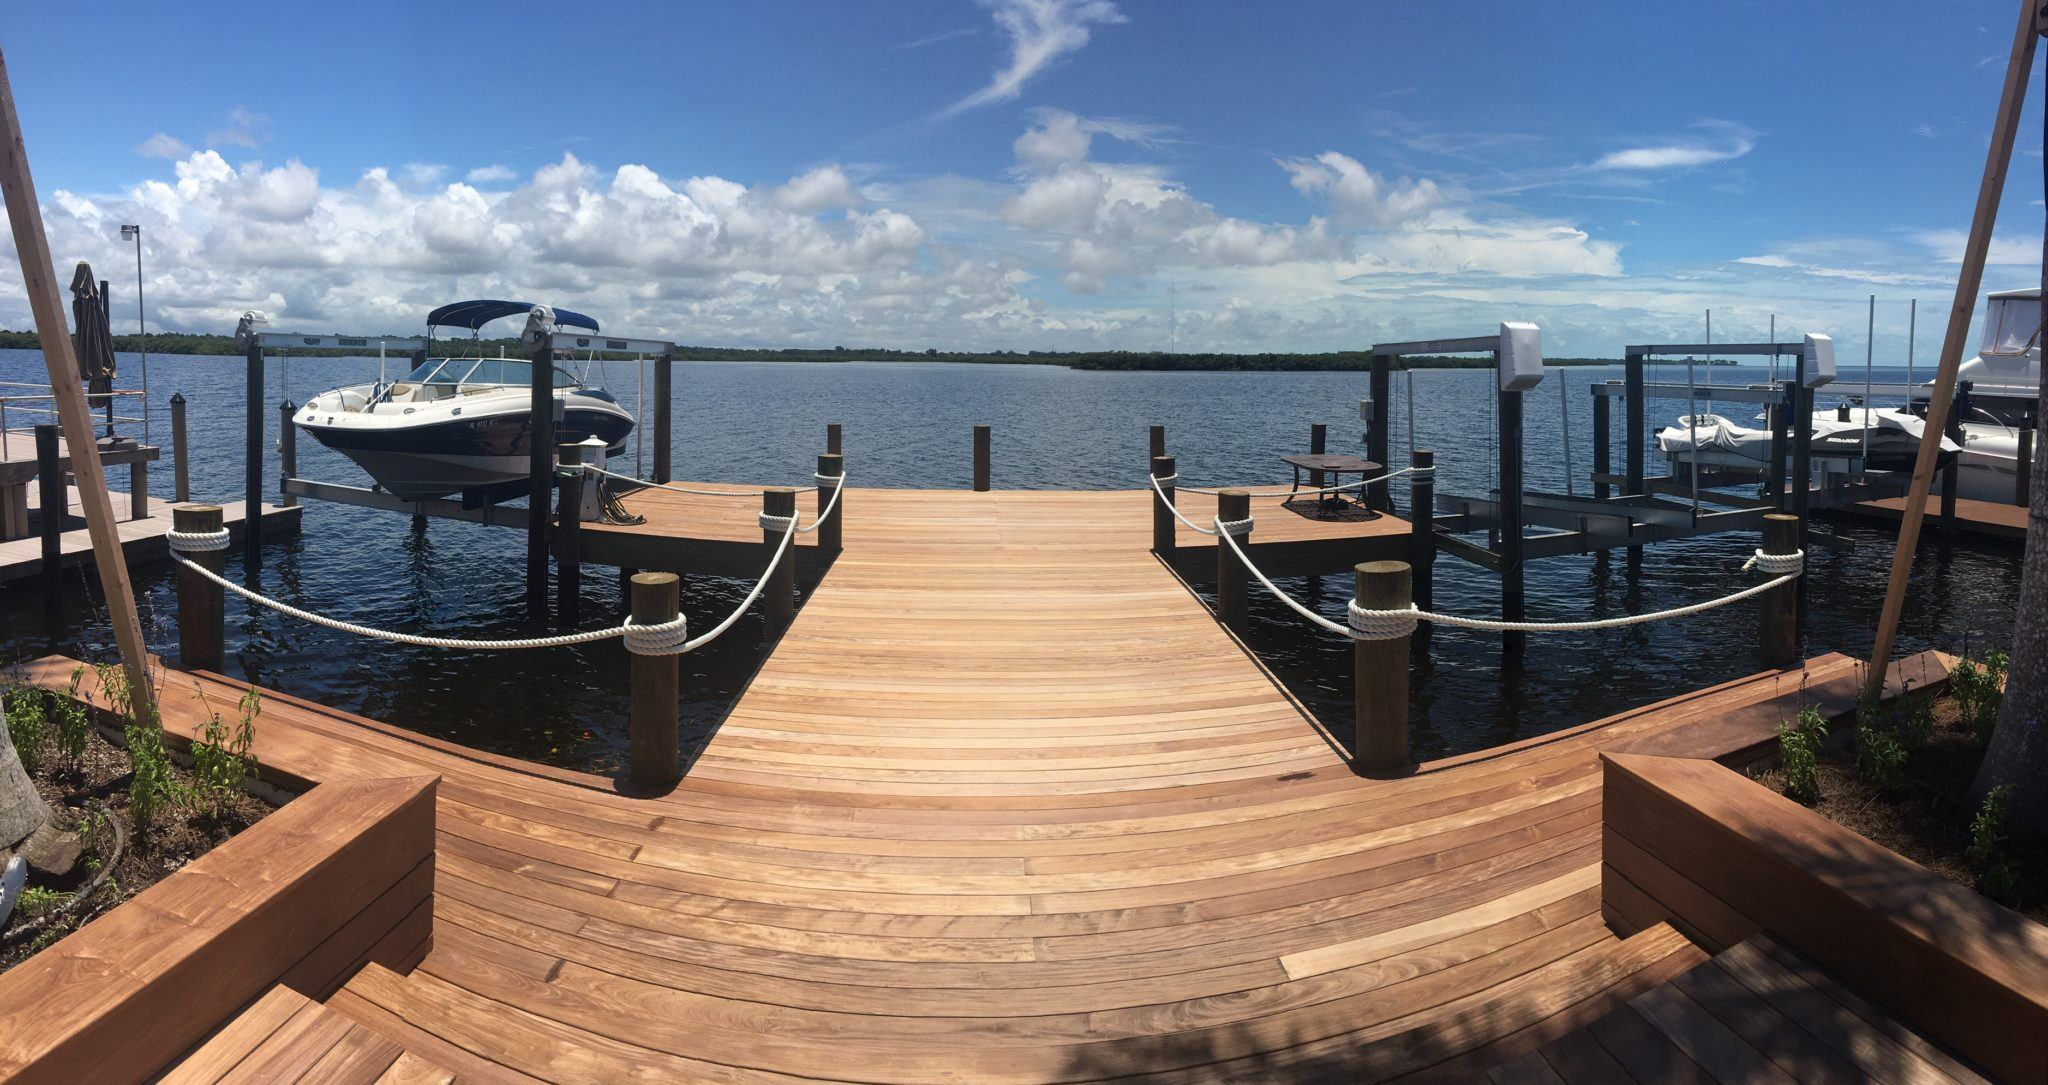 A new composite dock with two boat lifts on each side on the water